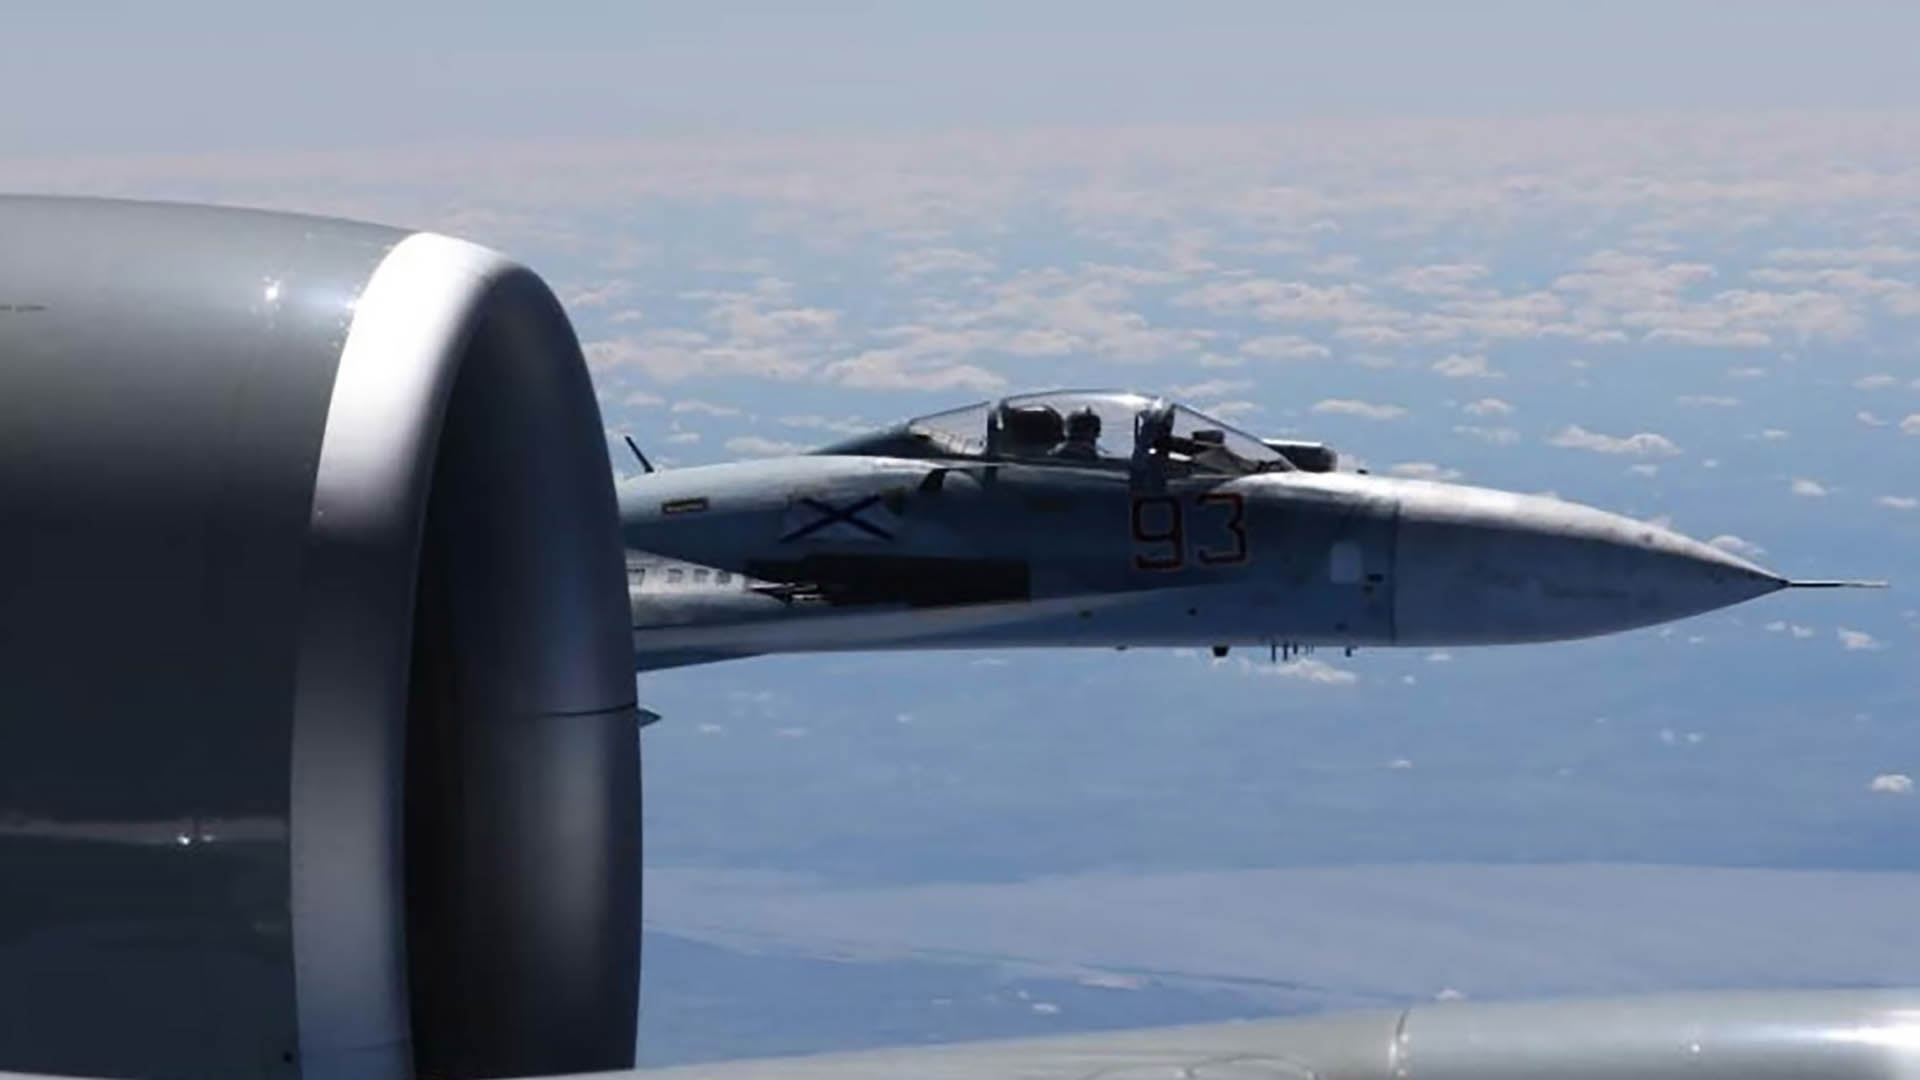 Japan DM apologizes for late notification of US fighter jet's bomb drop